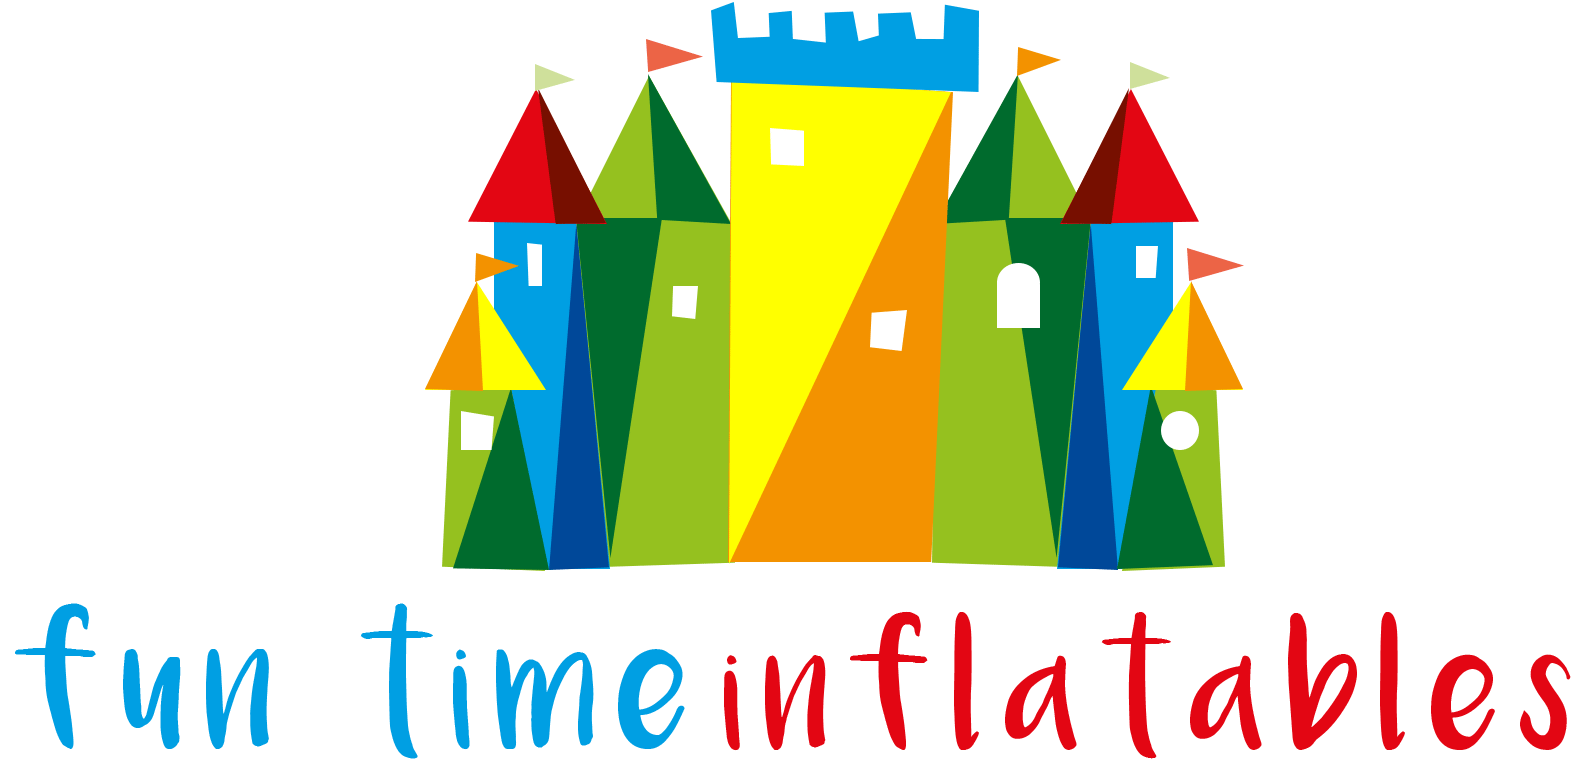 Fun Time Inflatables.